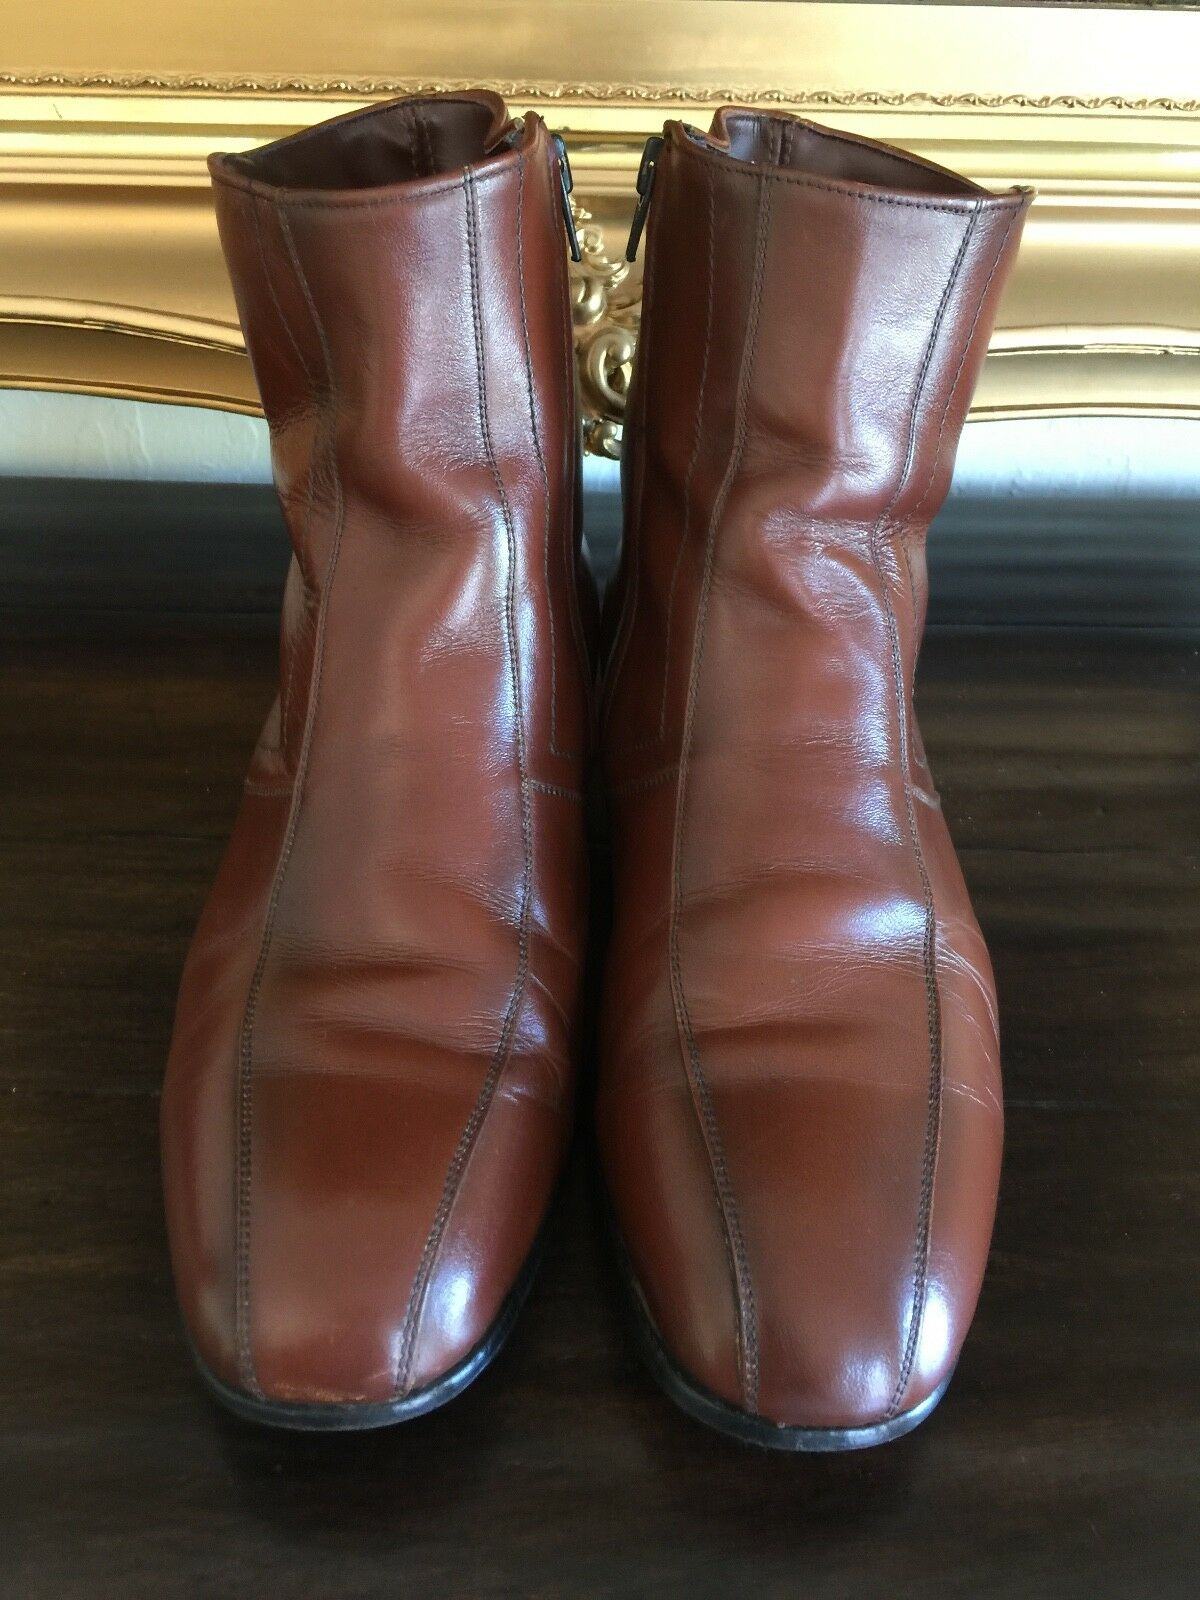 VINTAGE MEN'S 1970's STACY ADAMS BROWN LEATHER ANKLE BOOTS